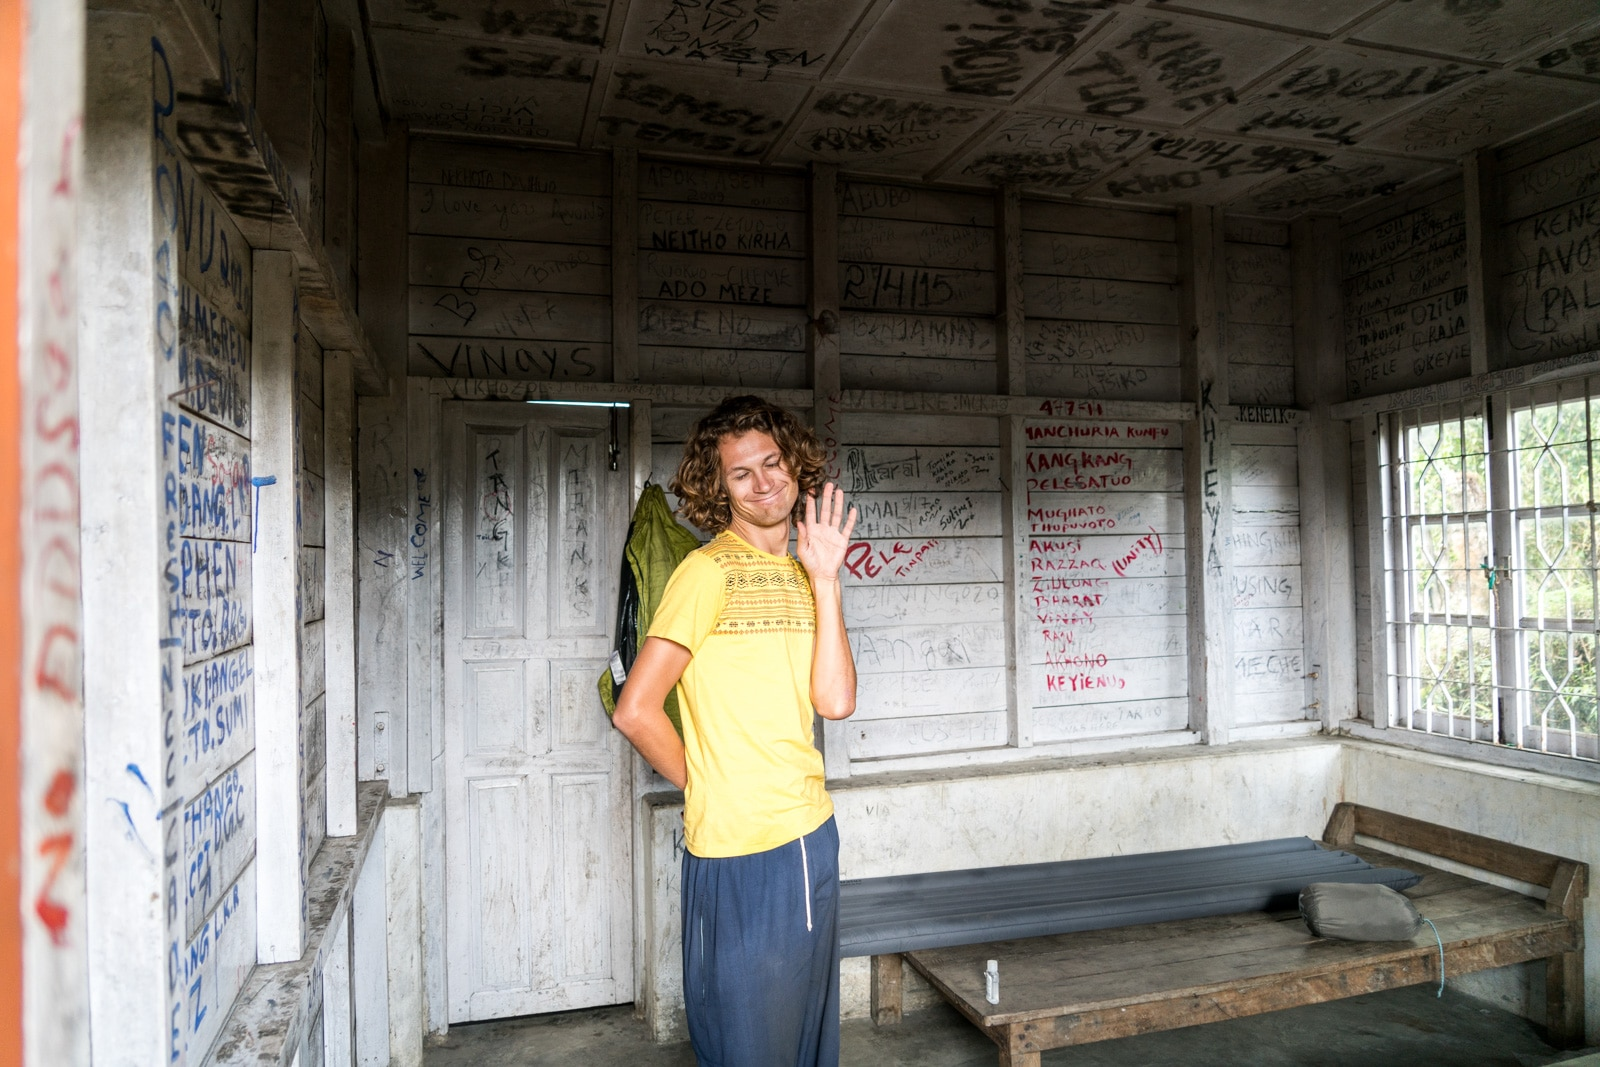 How to get to Dzukou Valley from Kohima, Nagaland, India - Rest house VIP room - Lost With Purpose